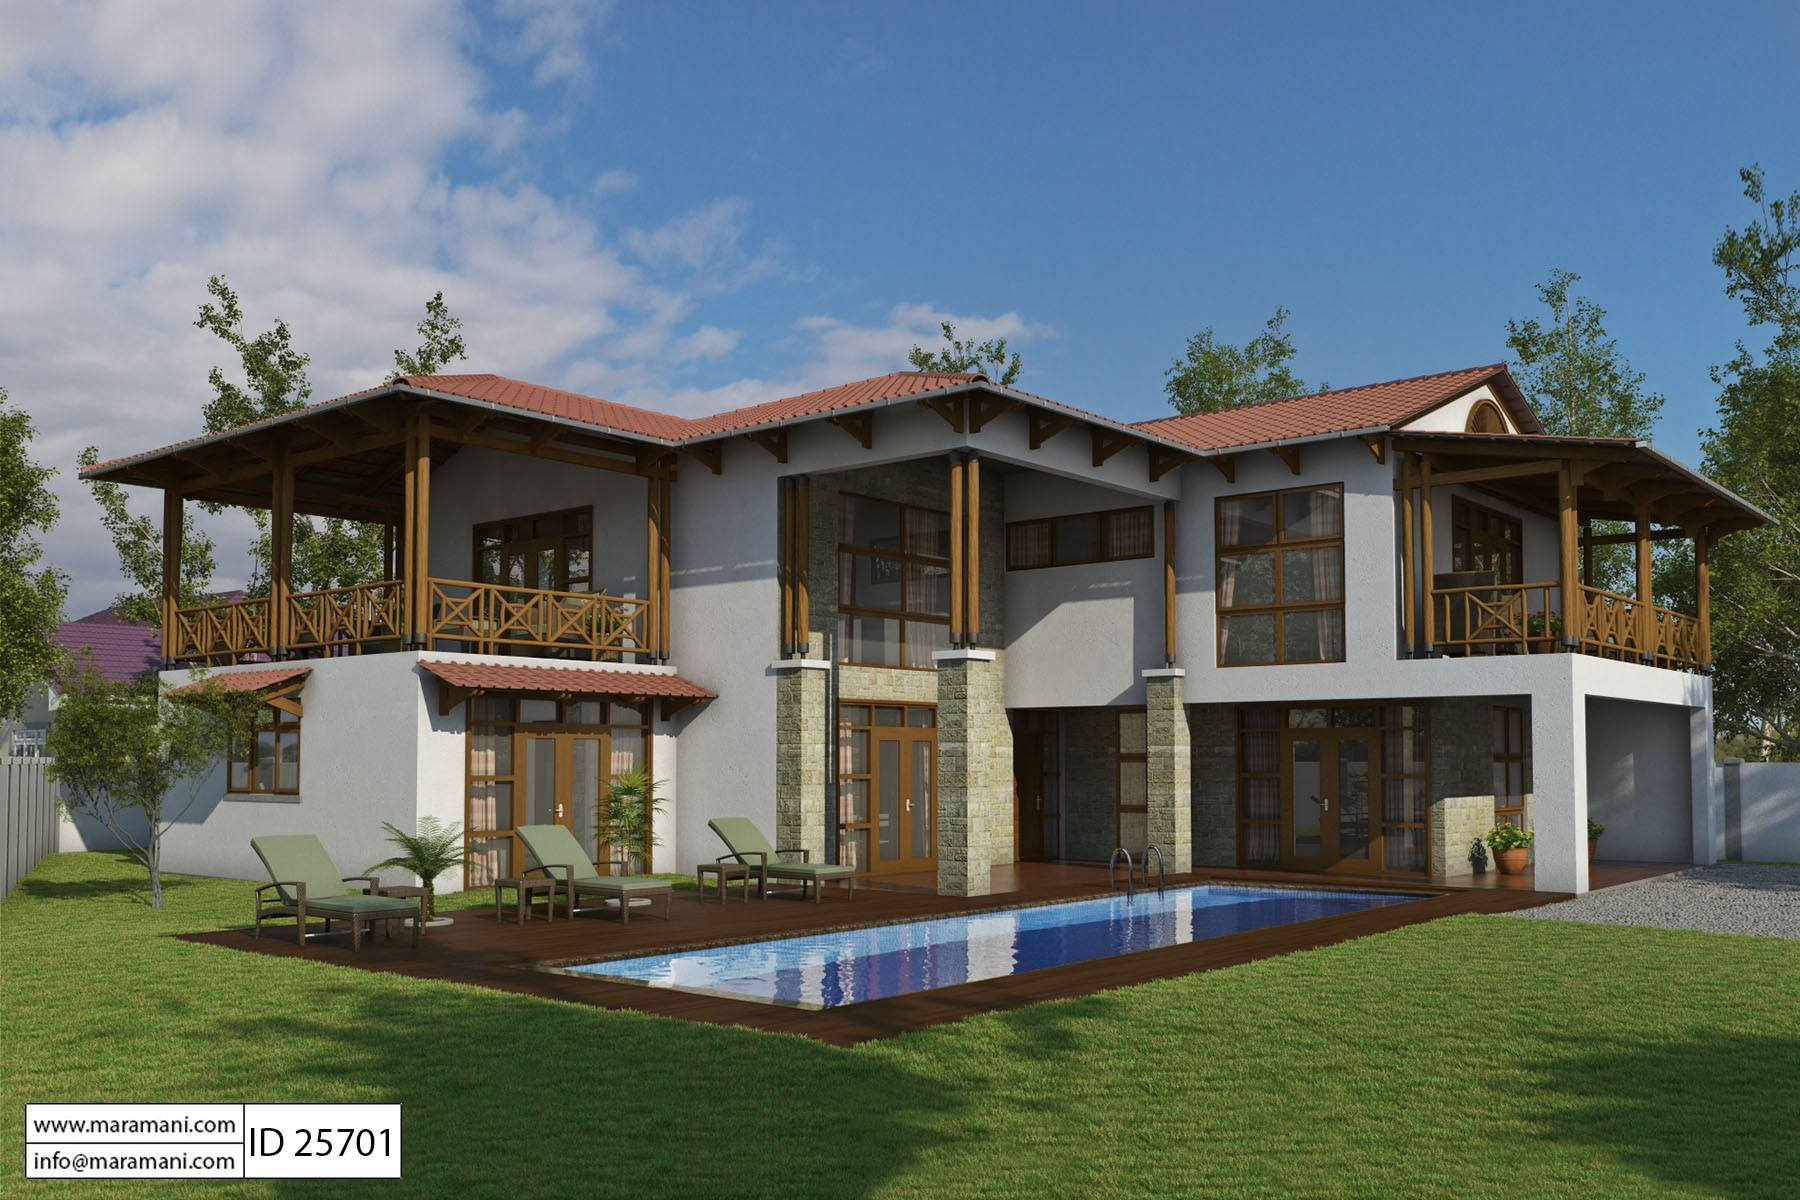 bedroom house plans  designs for africa  maramani, Bedroom designs